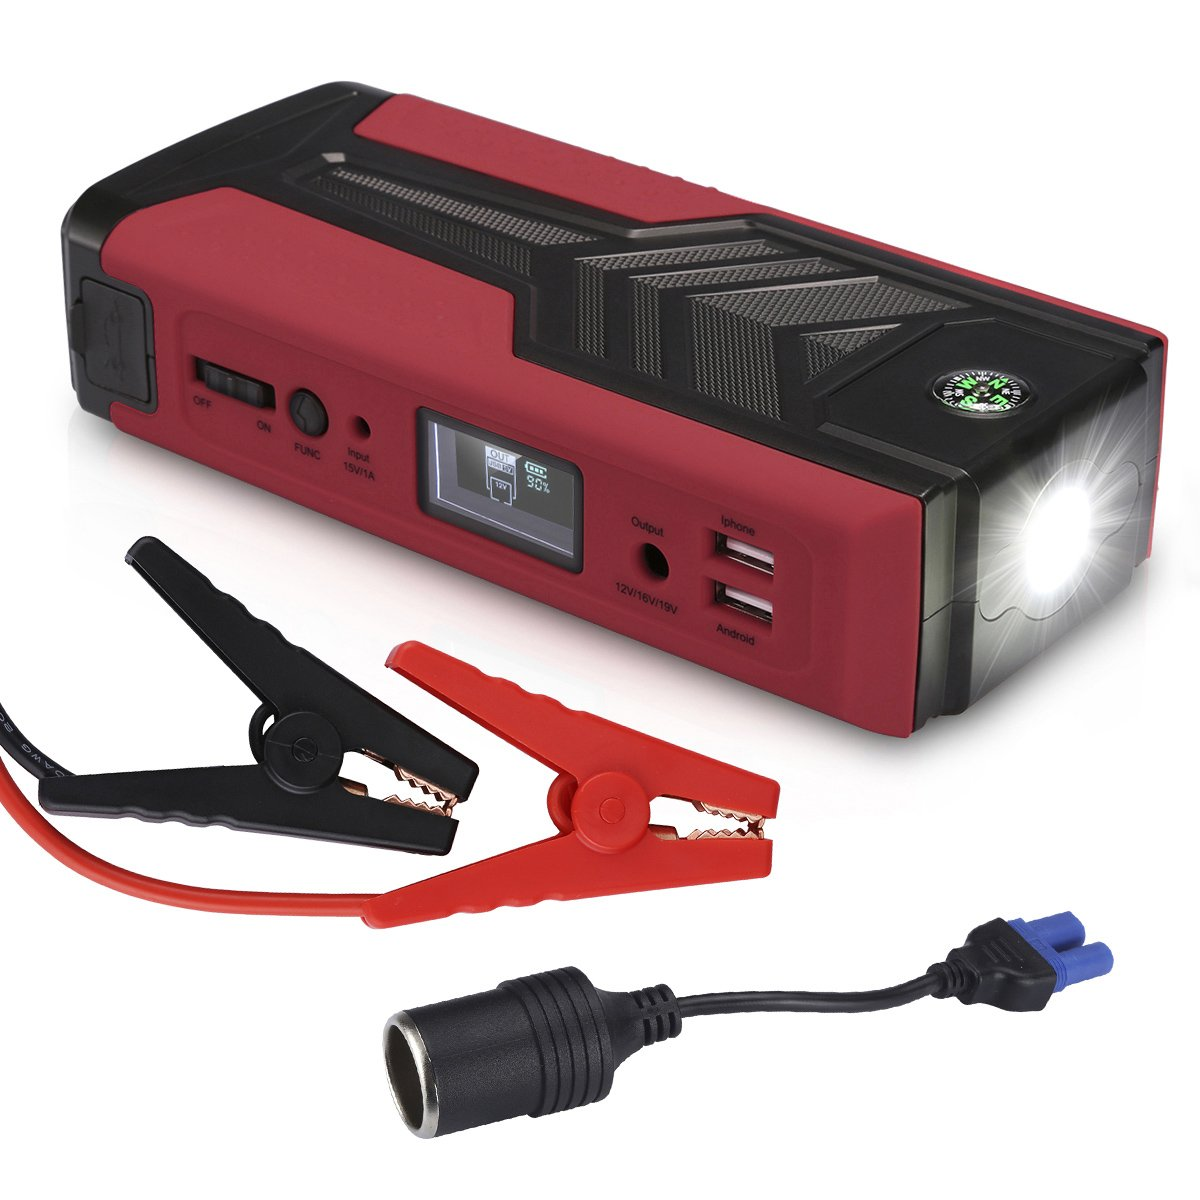 FLOUOREN 500A 18, 000mAh Car Starter Jump Starter Car Battery Charger Booster Power Bank with Dual USB/DC Output Jump Start 12V Automotive Motorcycle Boat - Red FLOUREON